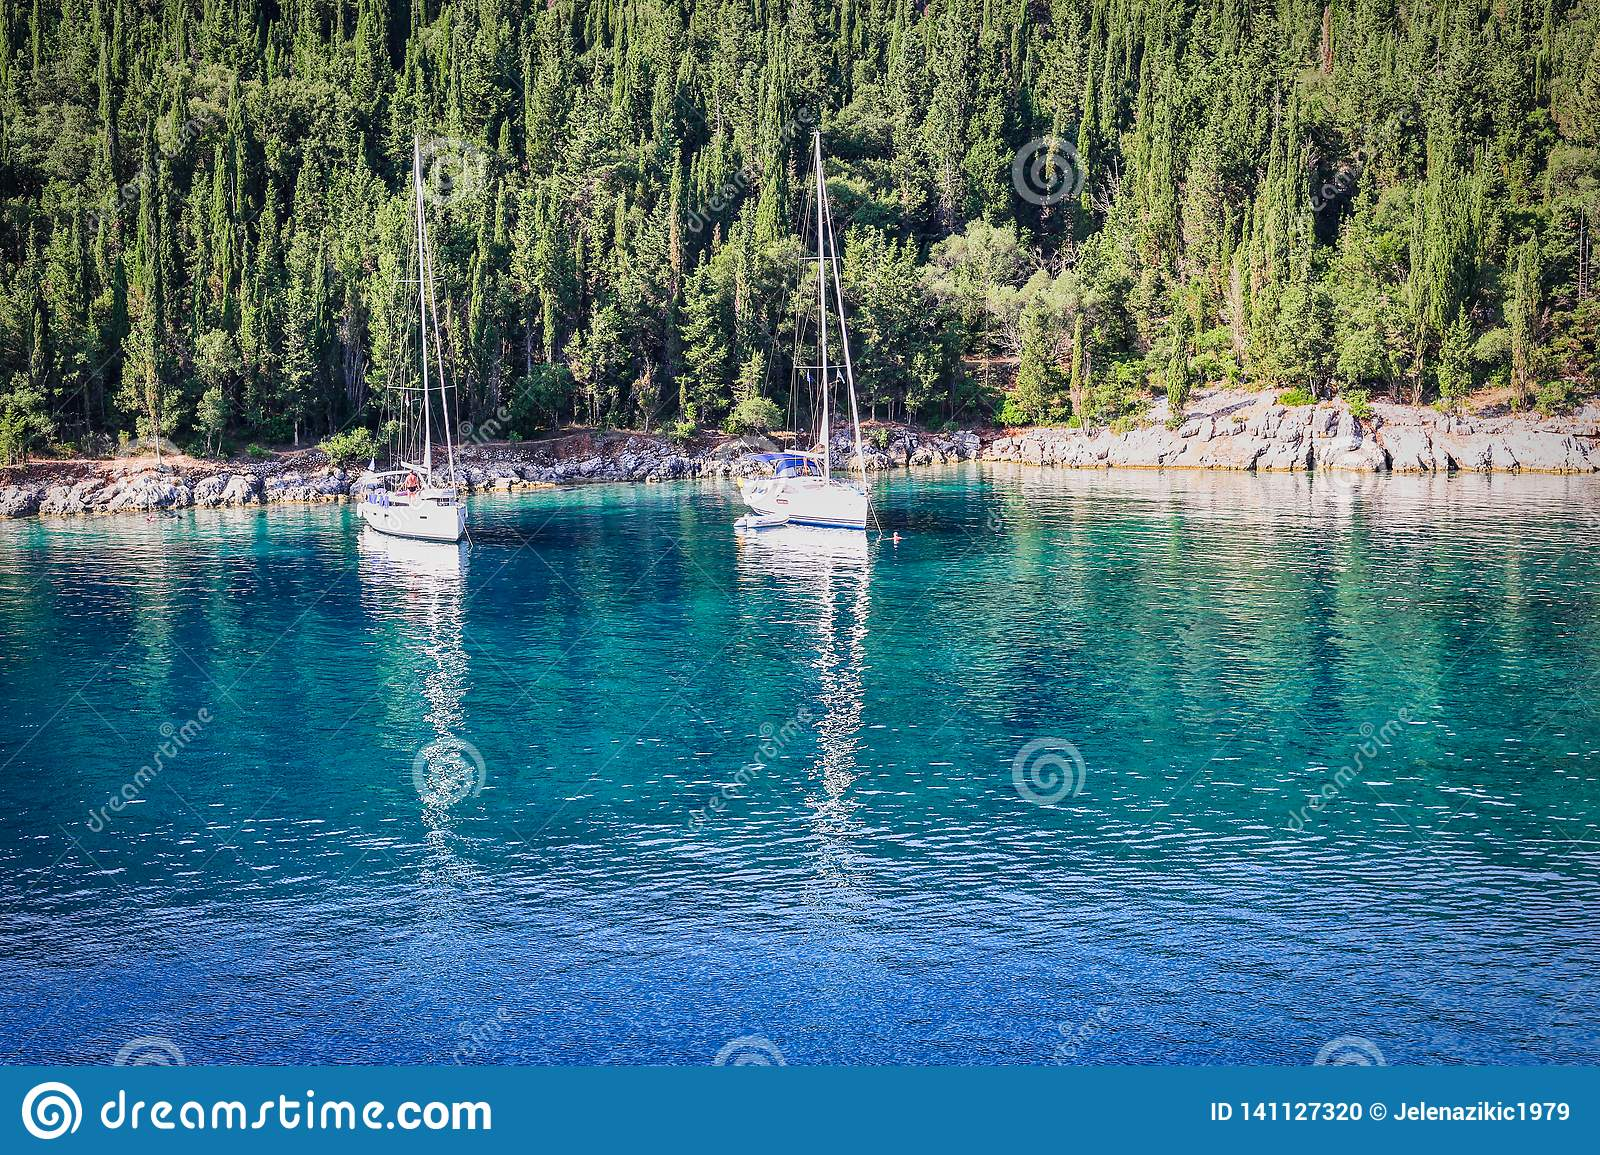 Two sailboats anchored in an emerald bay